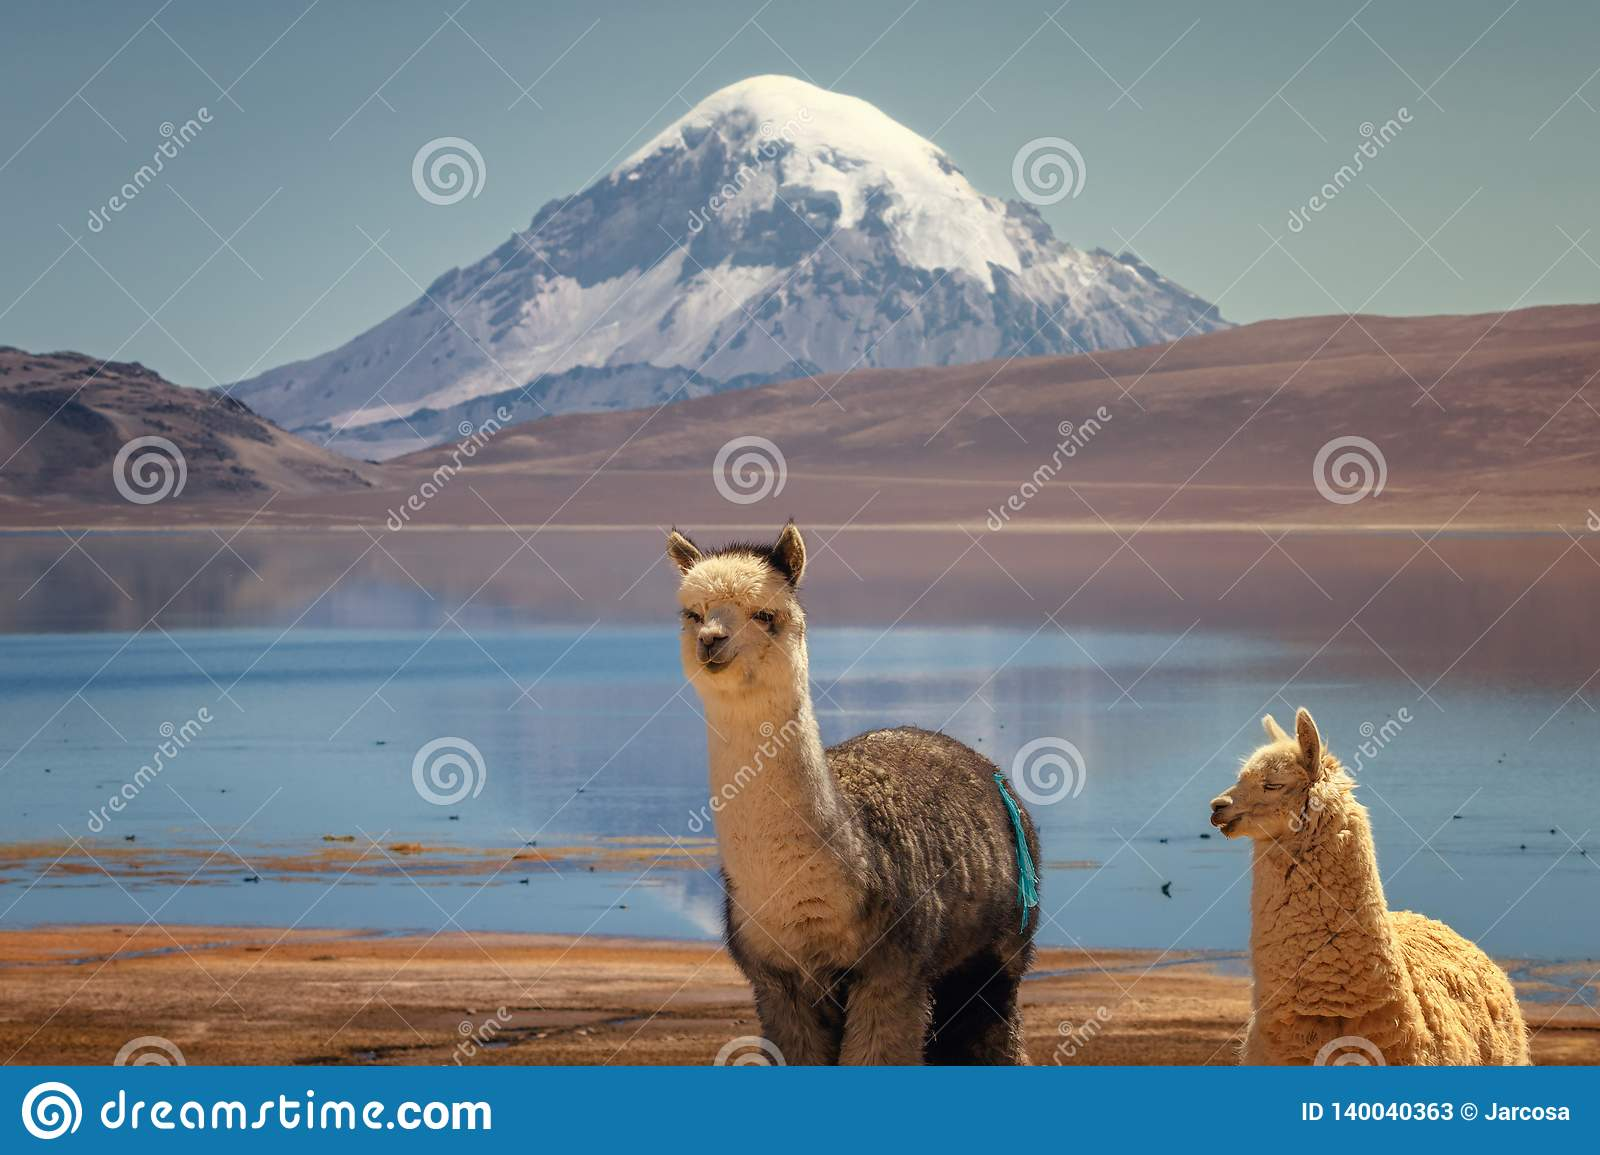 Alpaca`s Vicugna pacos grazing on the shore of Lake Chungara at the base of Sajama volcano, in the northern Chile